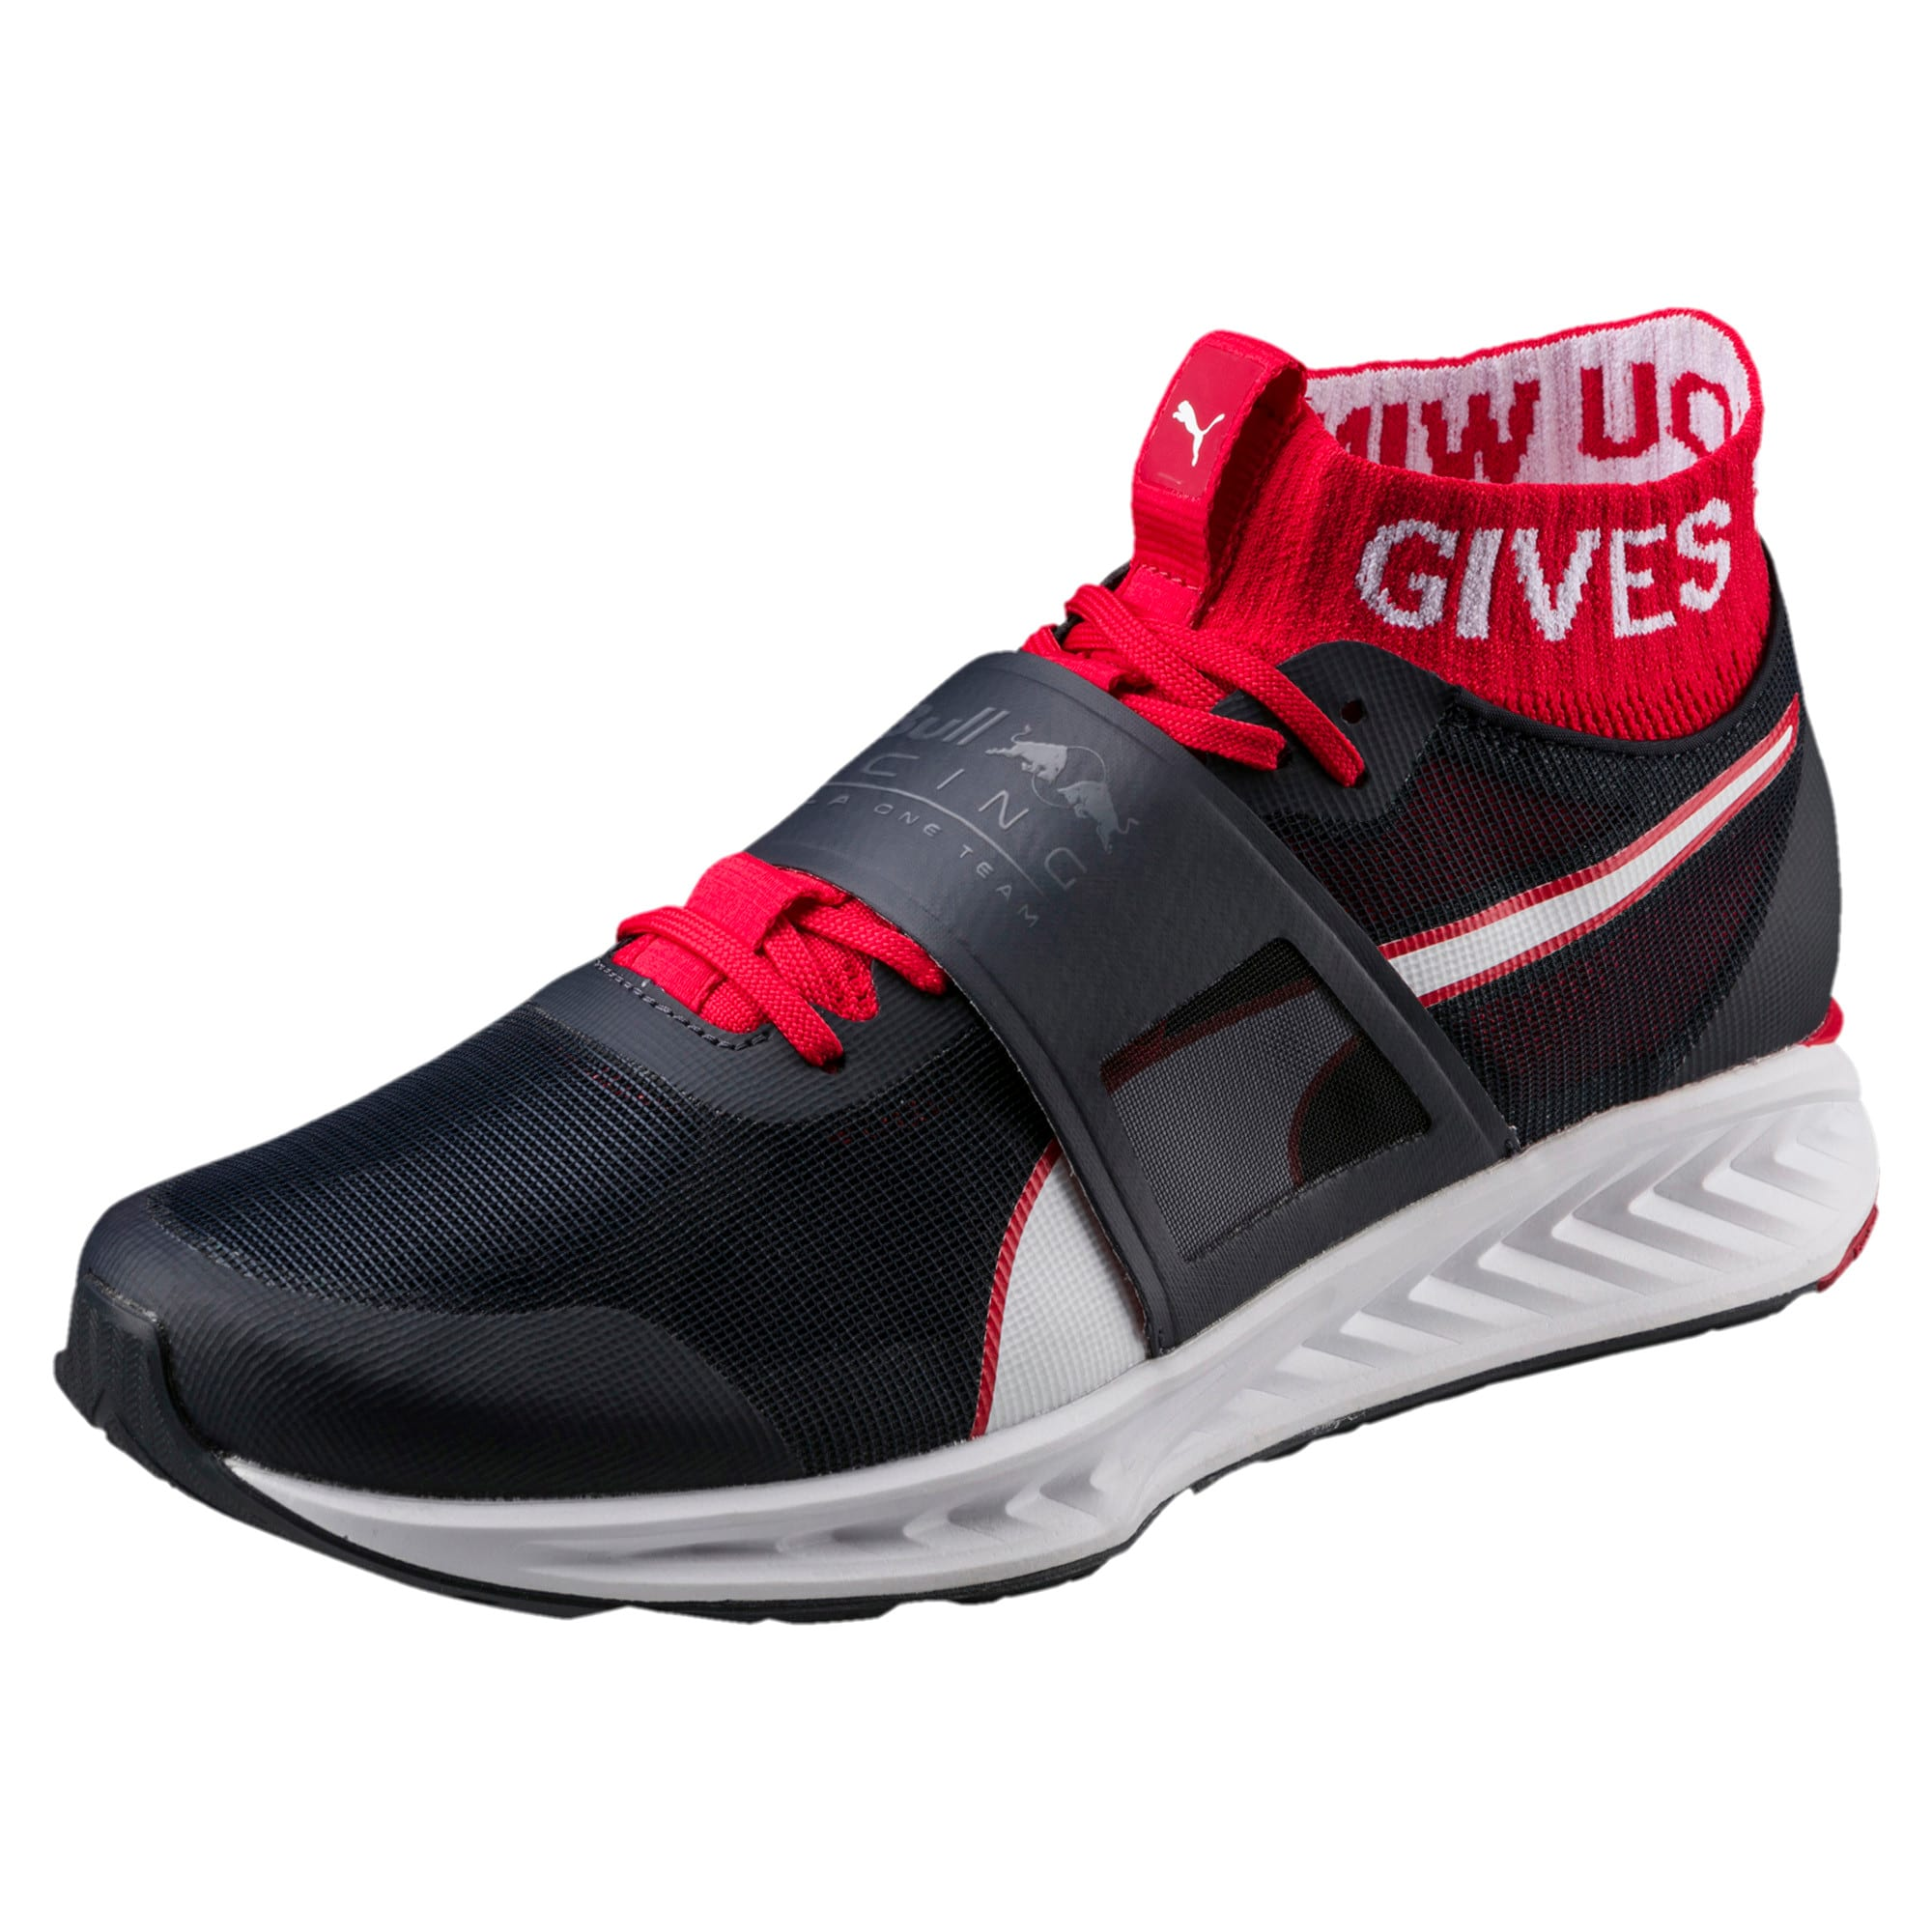 Thumbnail 1 of Red Bull Racing Mechs Ignite V3 Men's Training Shoes, NIGHT SKY-White-Chinese Red, medium-IND